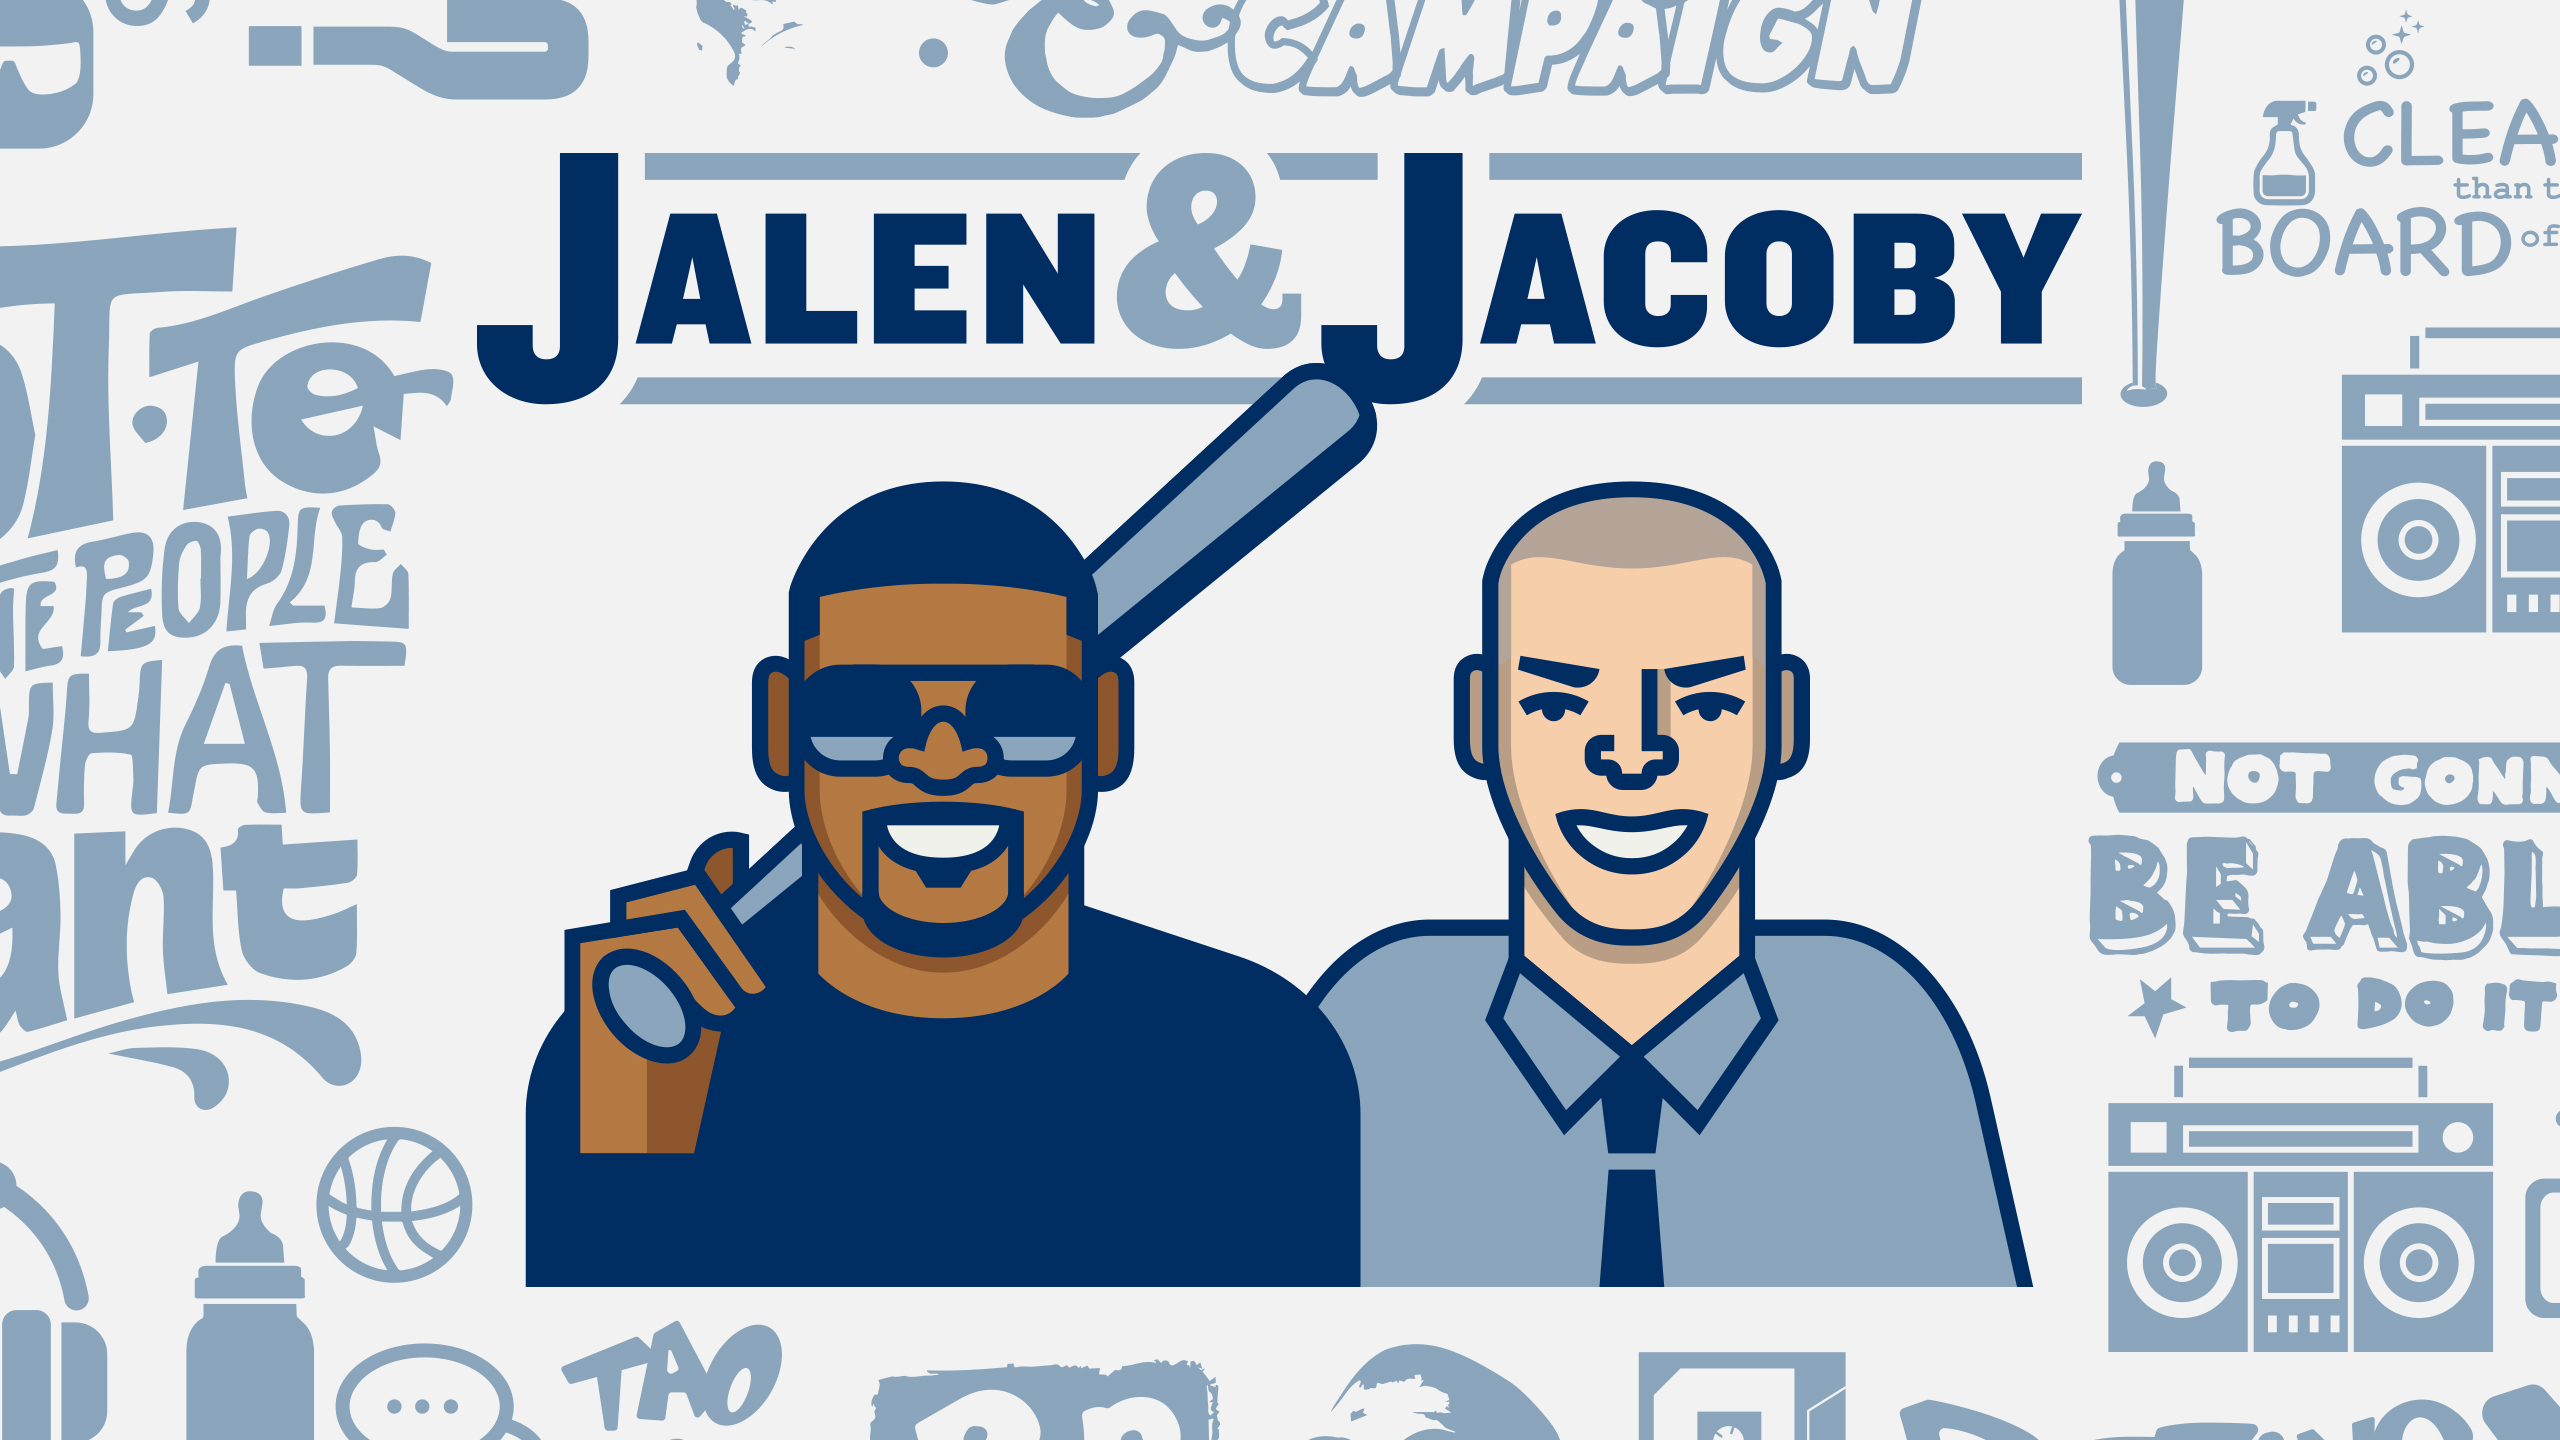 Tue, 4/16 - Jalen & Jacoby